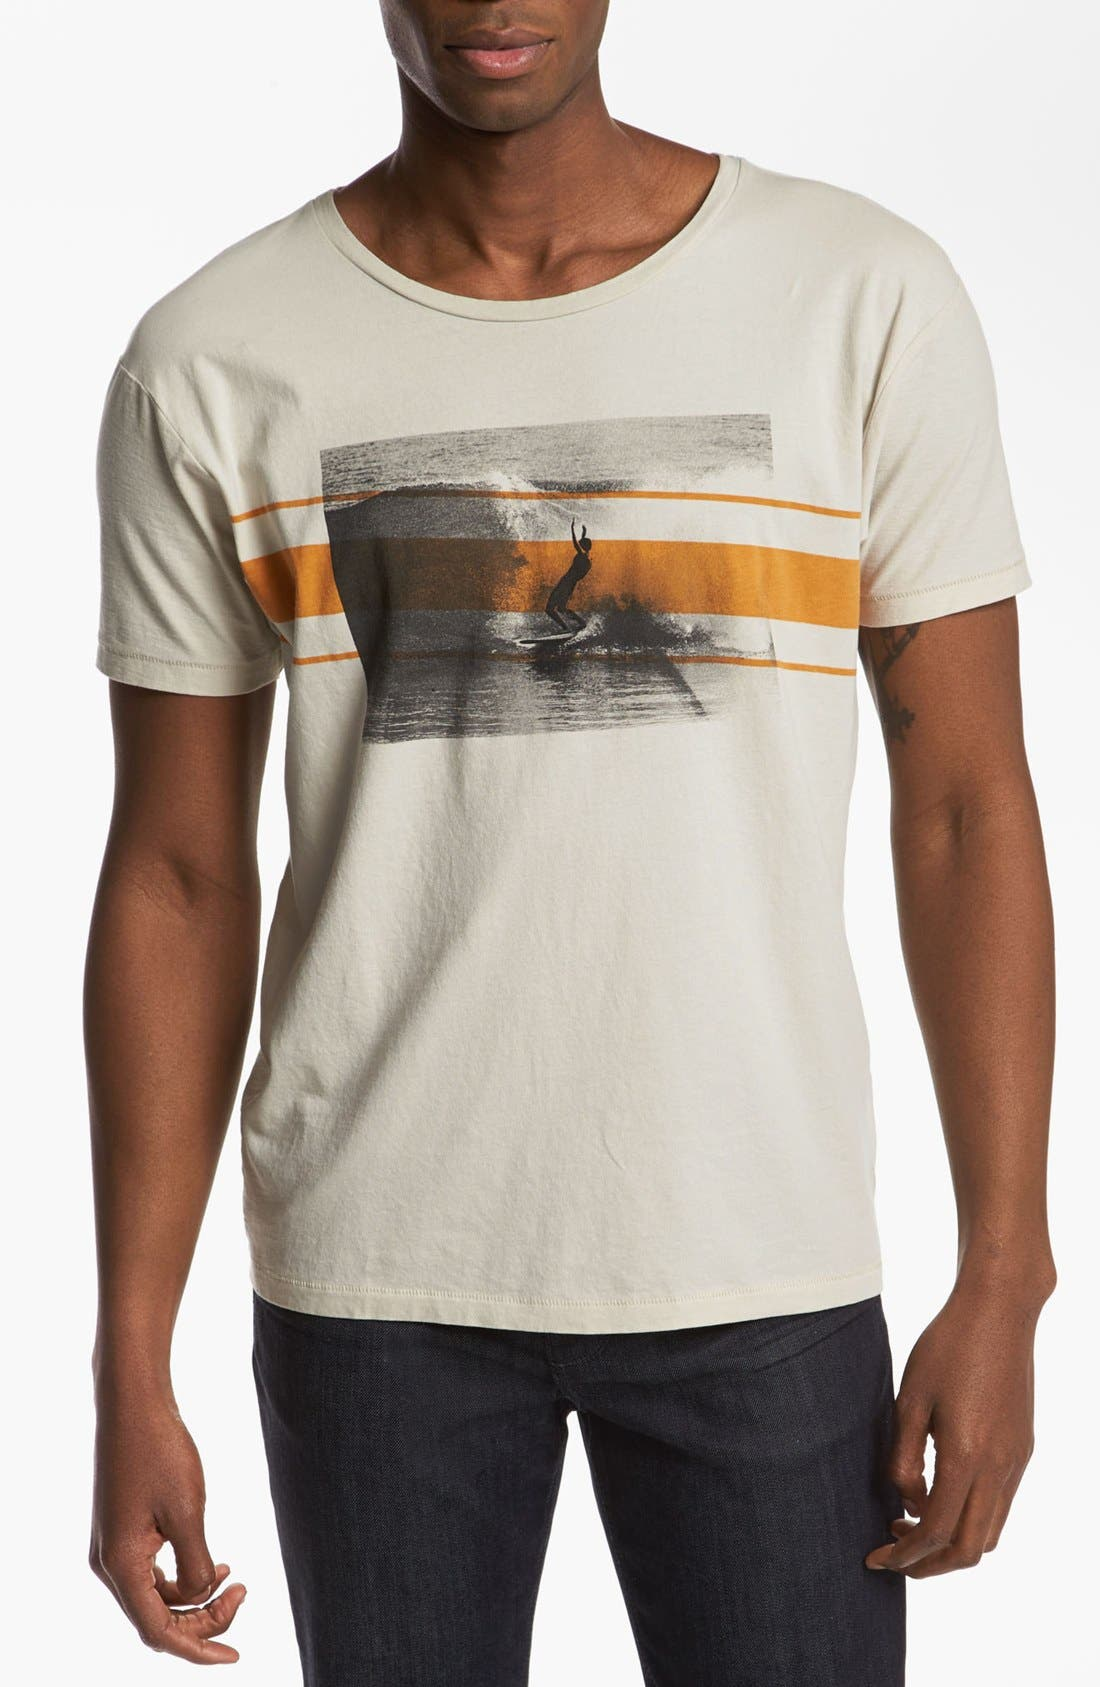 Alternate Image 1 Selected - Vans 'Freakwaive Cool' T-Shirt